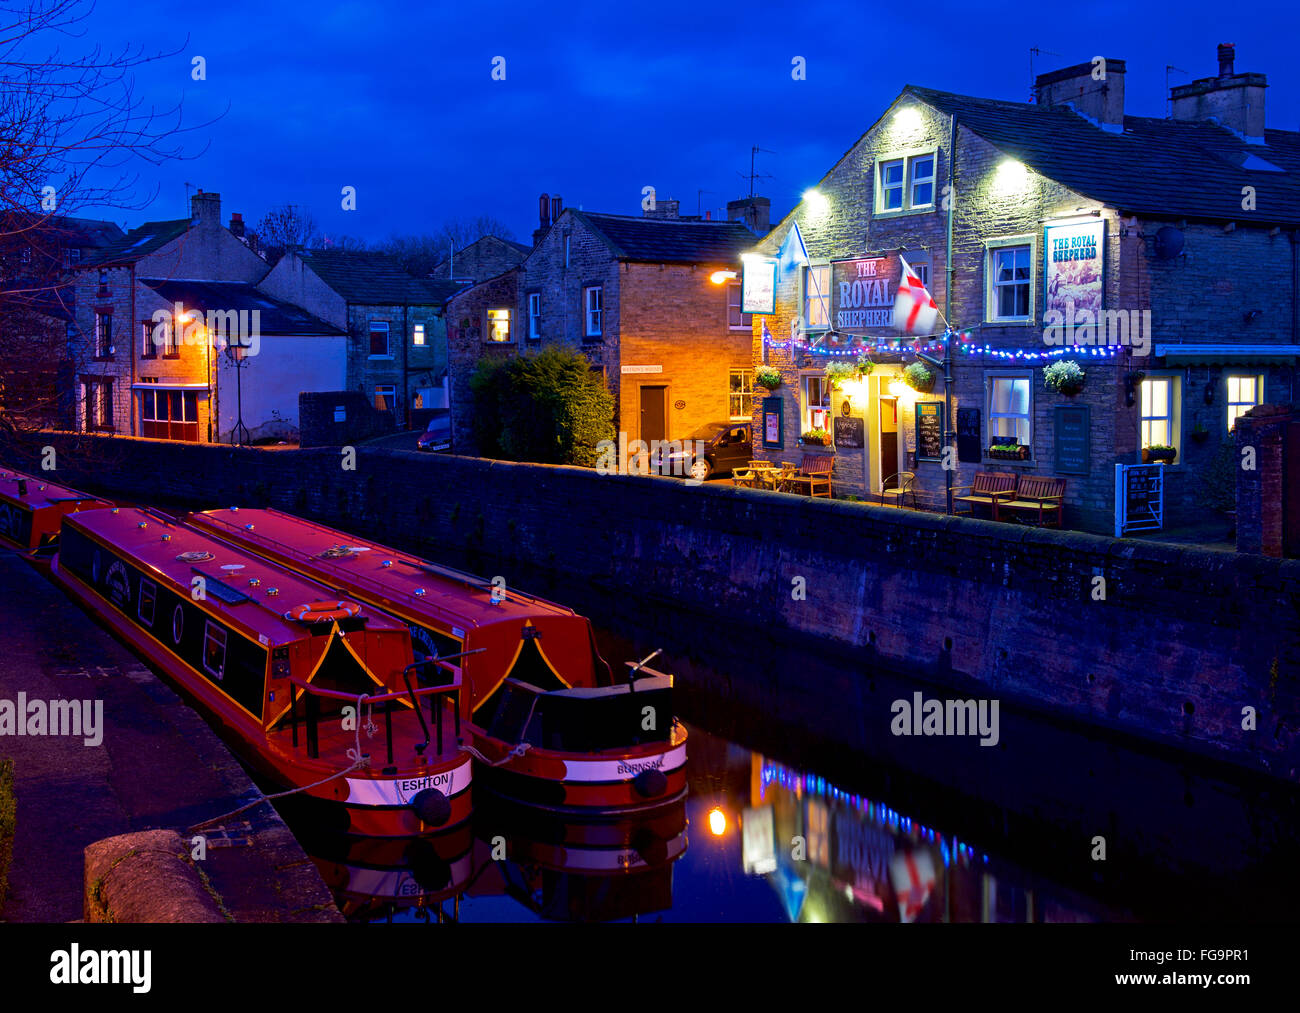 Pub - the Royal Shepherd - next to the Leeds & Liverpool Canal at Skipton, North Yorkshire, England, UK - Stock Image